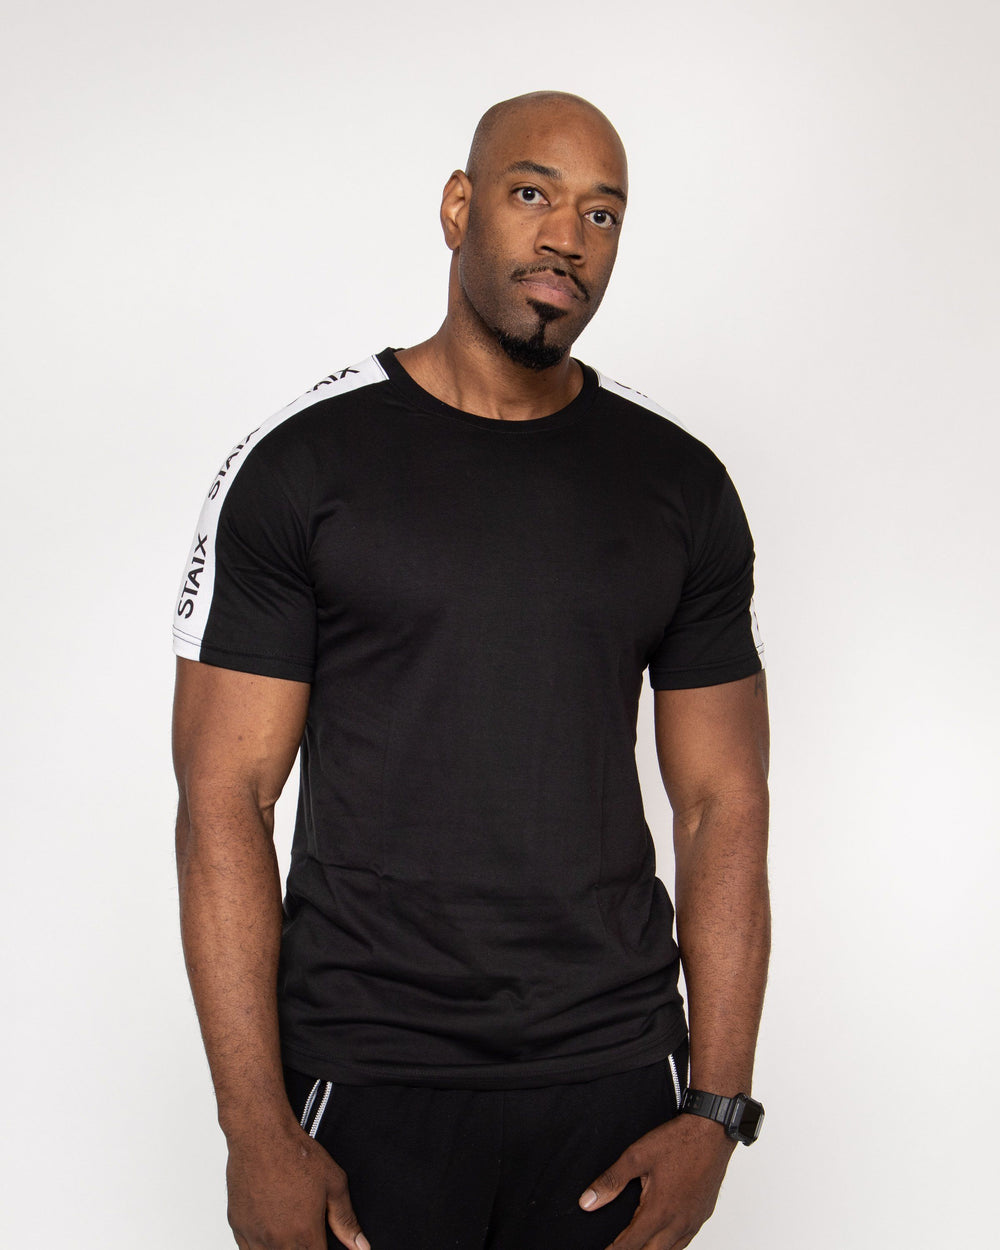 STAIXED Tee - Black Men's STAIX Tee STAIX